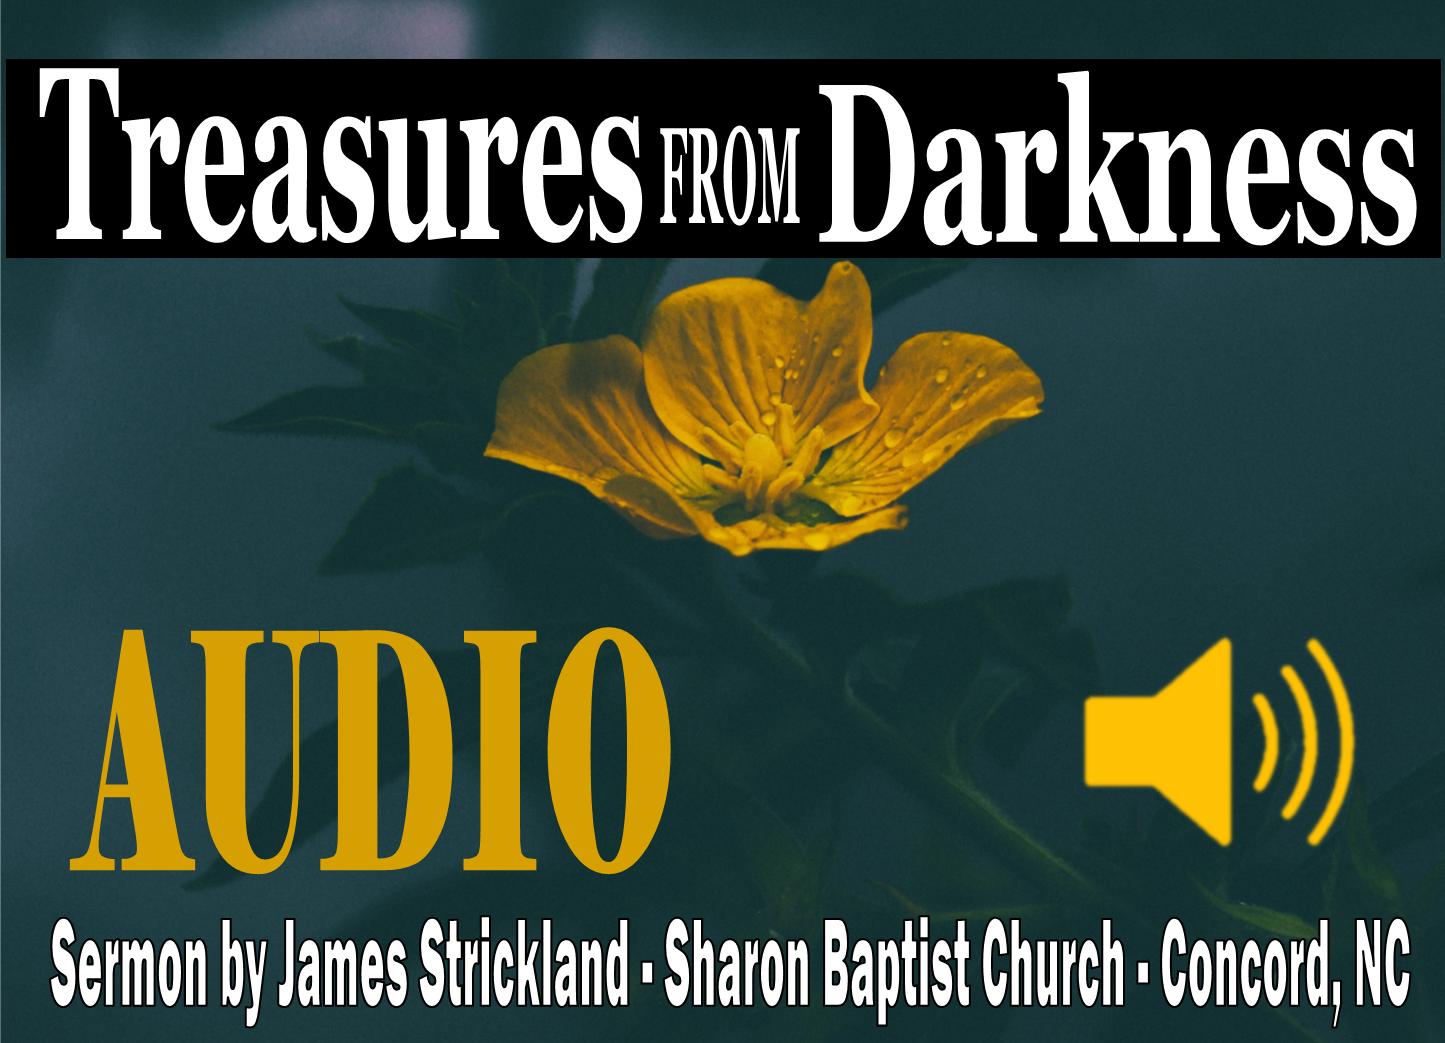 Treasures from Darkness sermon by James Strickland